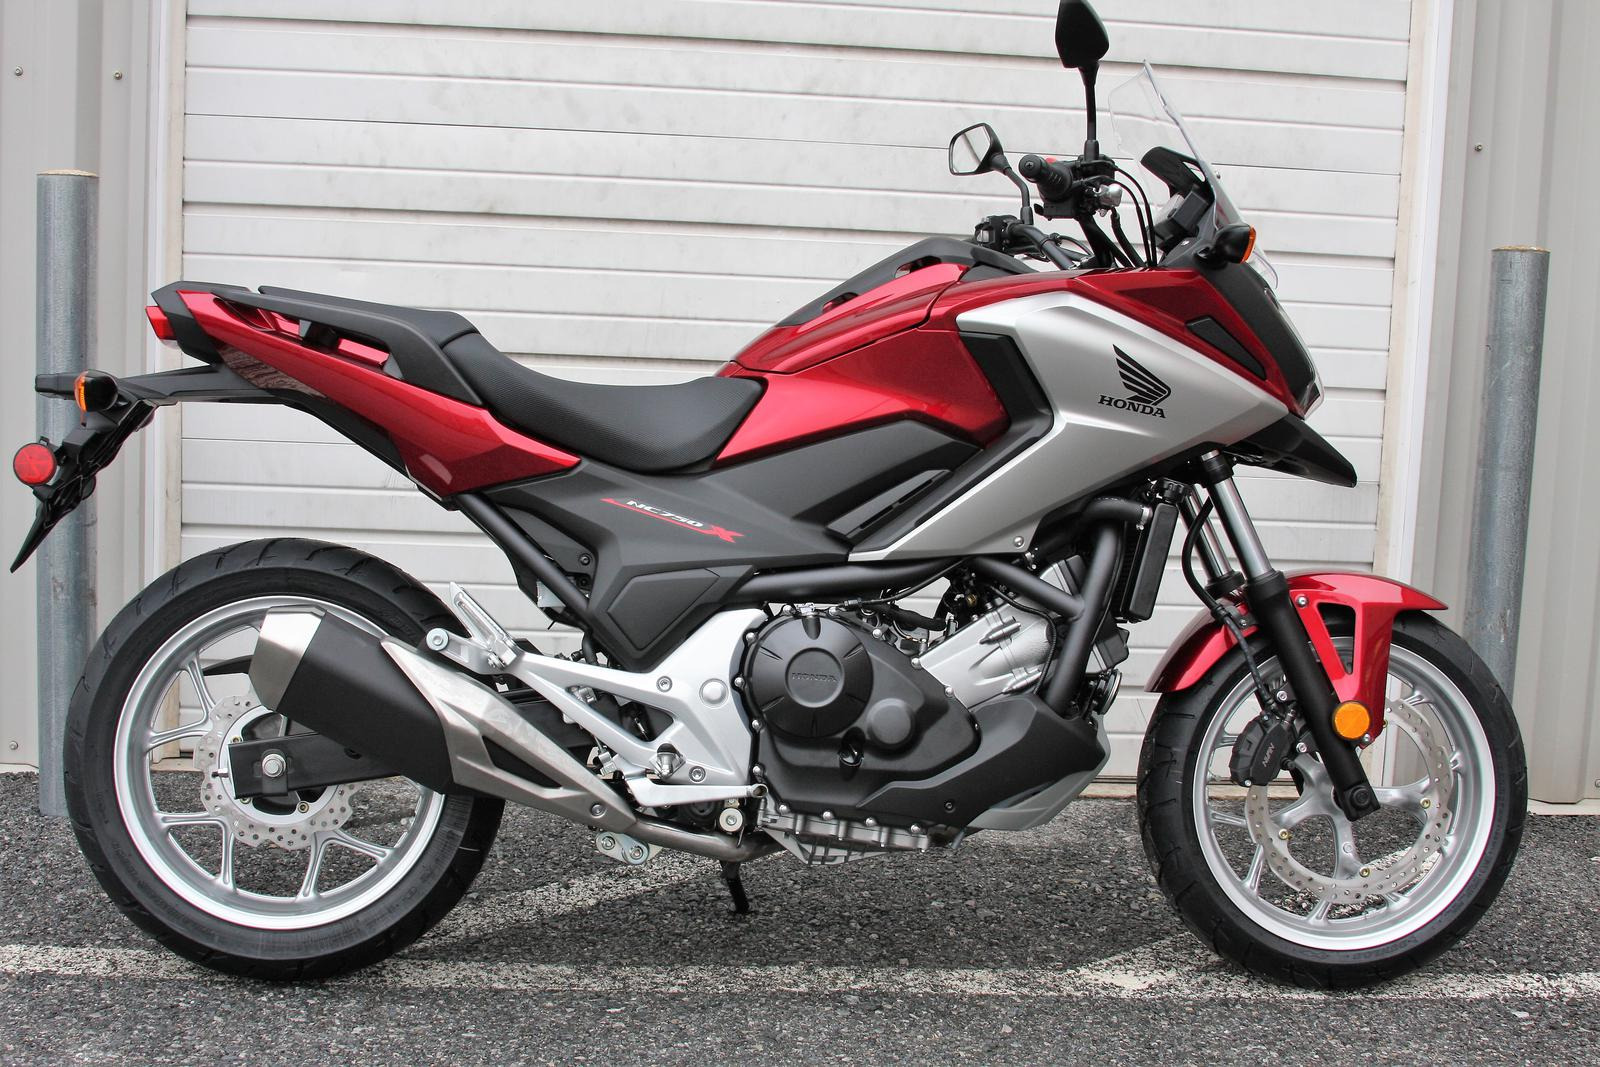 2018 Honda Nc750x For Sale In York Pa Ams Action Motorsports 717